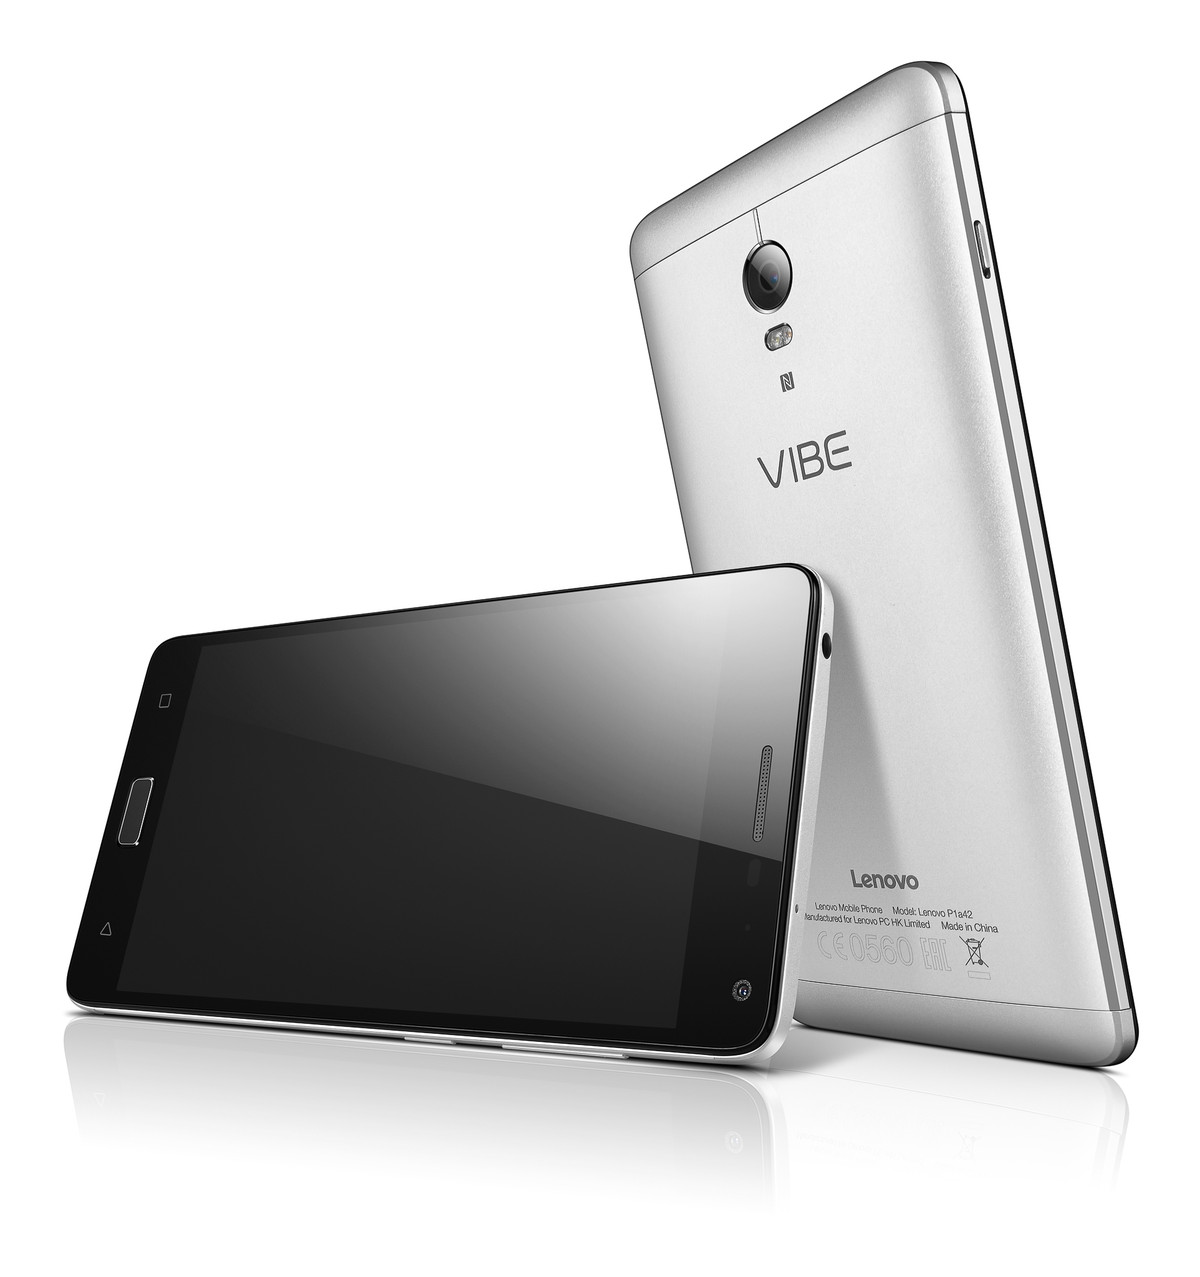 How To Hard Reset Lenovo Vibe P1m In 4 Easy Steps - Hard